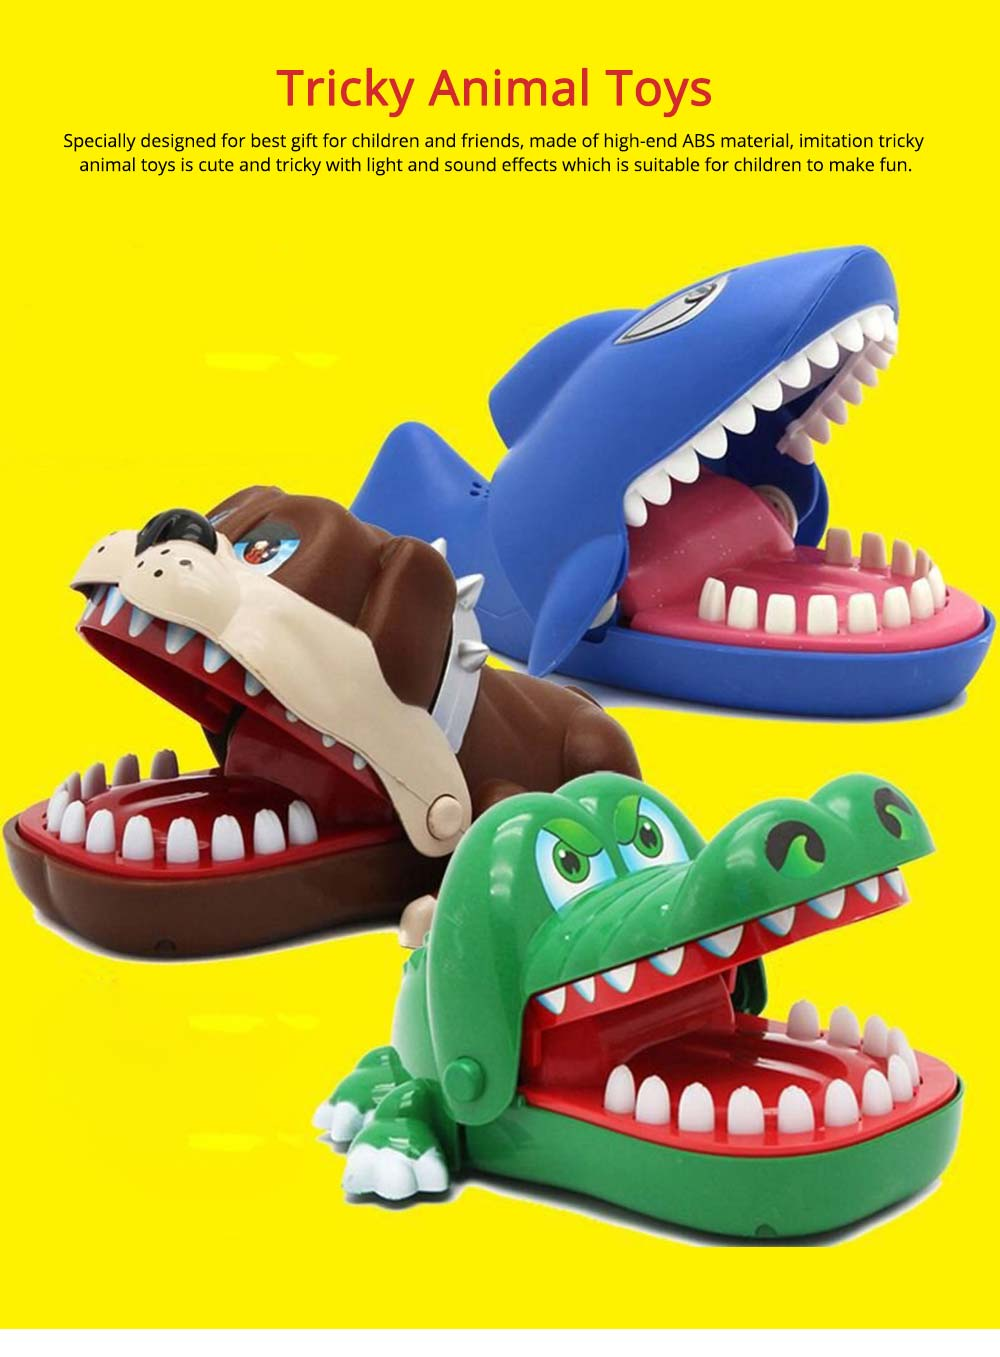 Small Tricky Animal Toys, Lifelike Teeth Finger Biting Toy with Lights and Sound Effects, Perfect Gift for Children 0